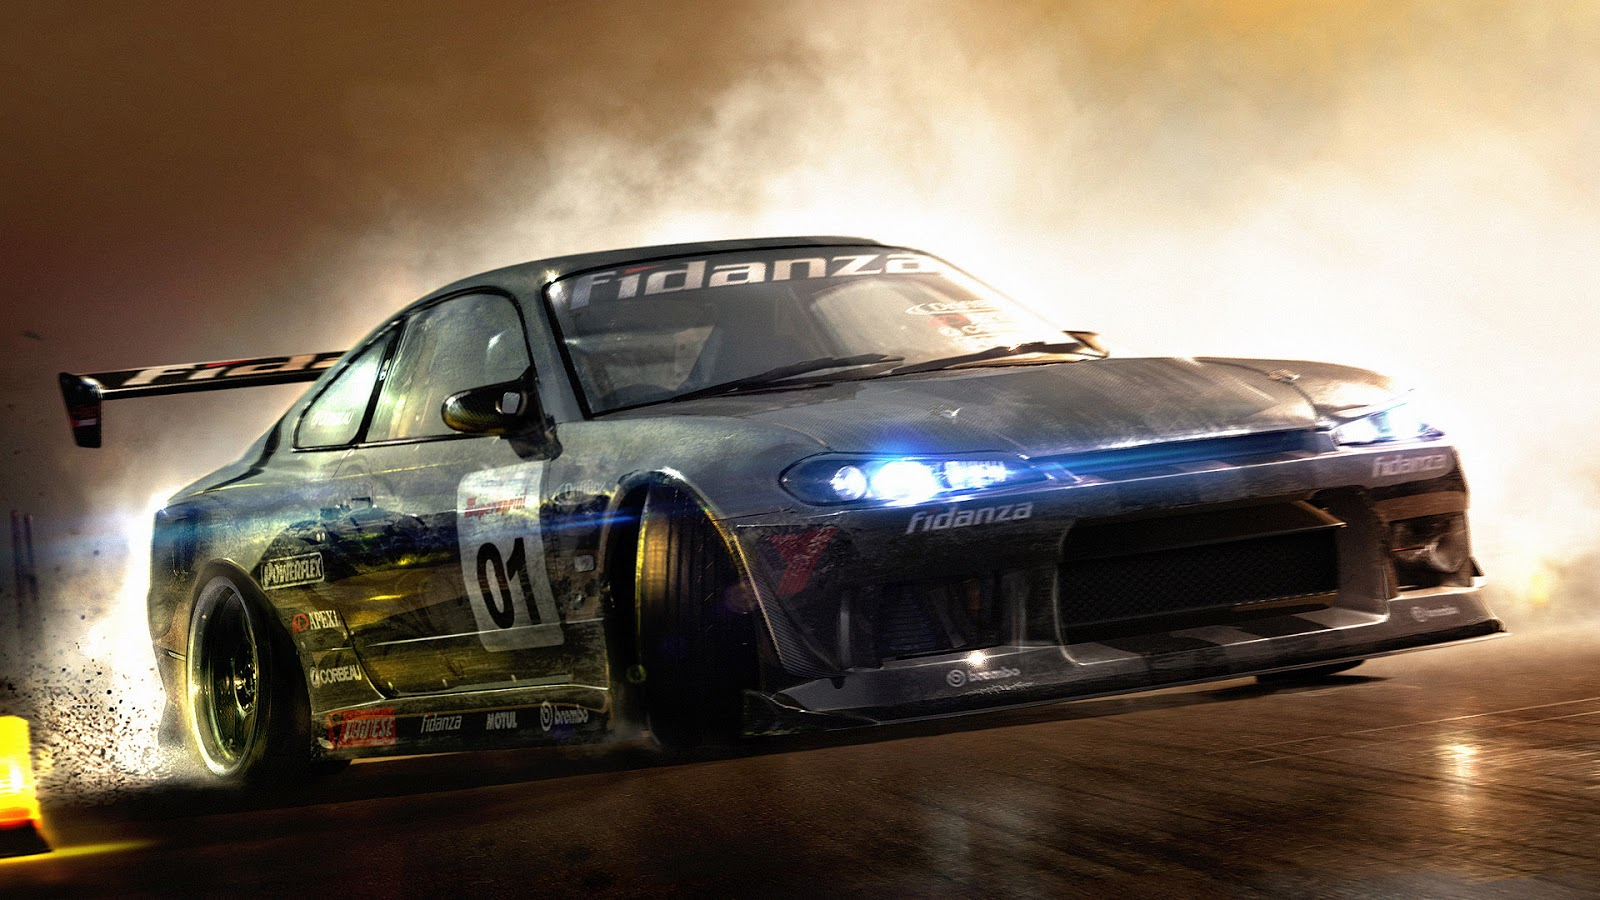 drifting imagesDrifting Cars Wallpaper